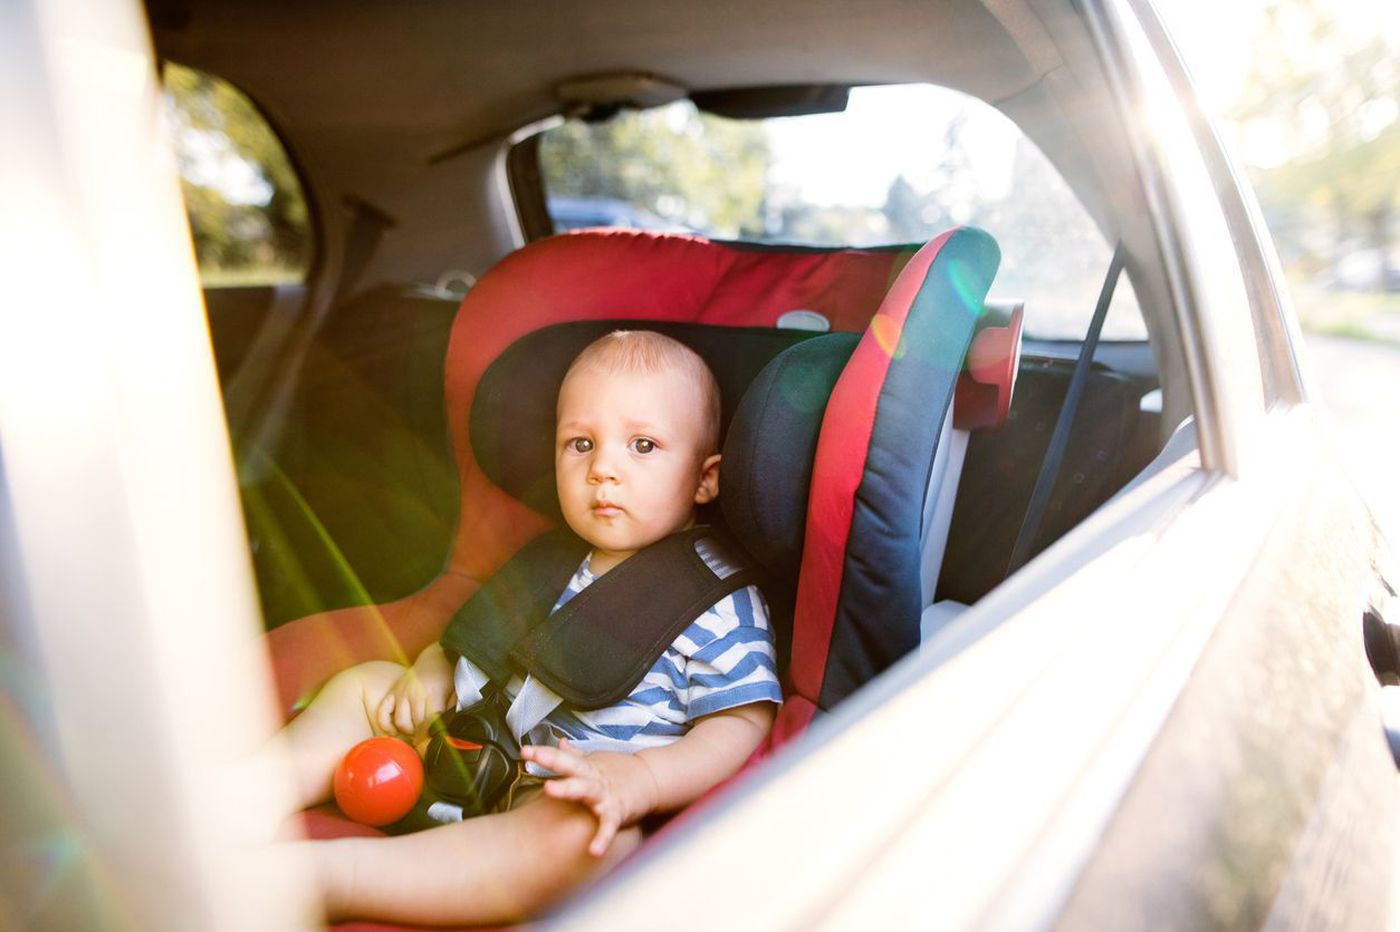 How do some parents leave their children behind in hot cars? It's in the brain.